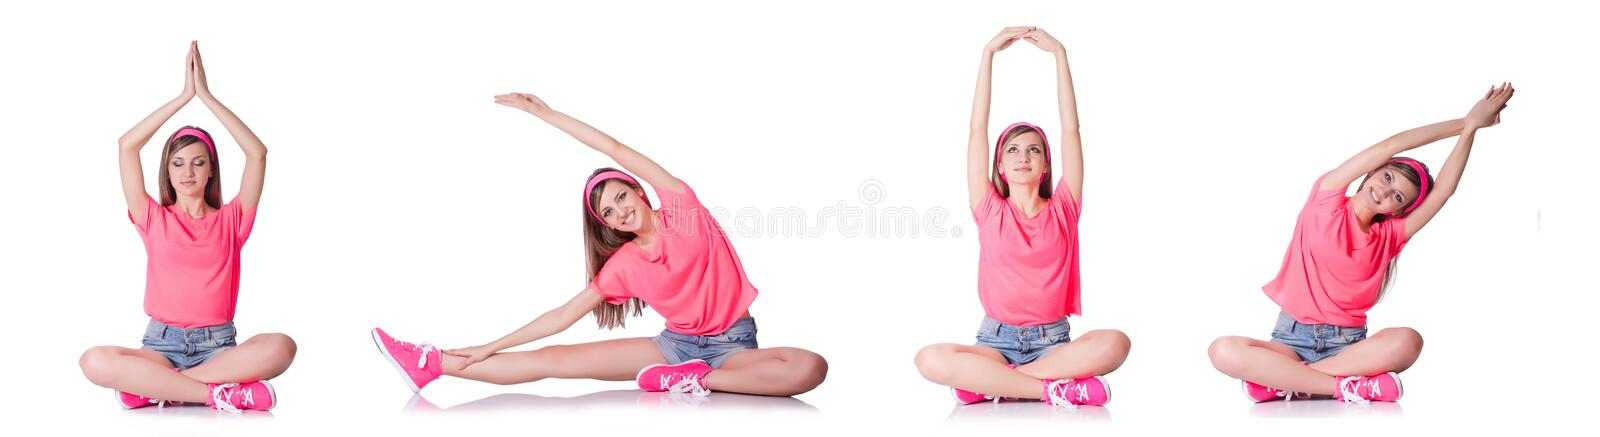 The young woman doing exercises on white stock image